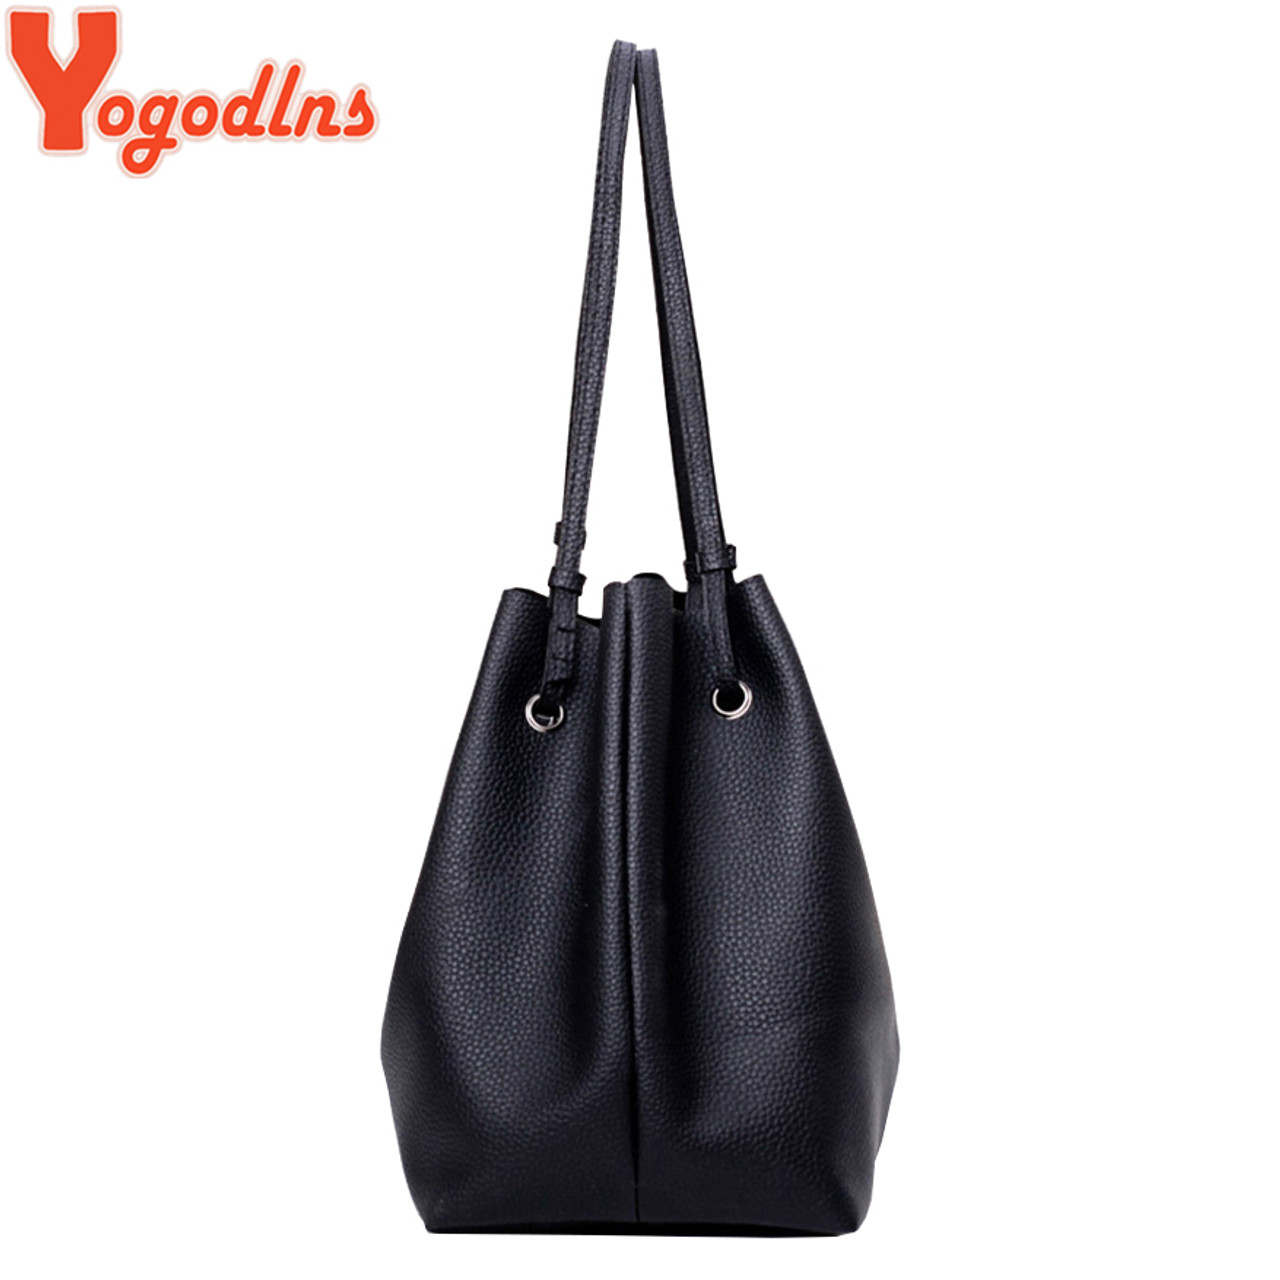 dd91c5748d ... Yogodlns Tassel Bag Set for Women 4 PCS Composite Bag PU Leather  Shoulder Handbag Female Casual ...